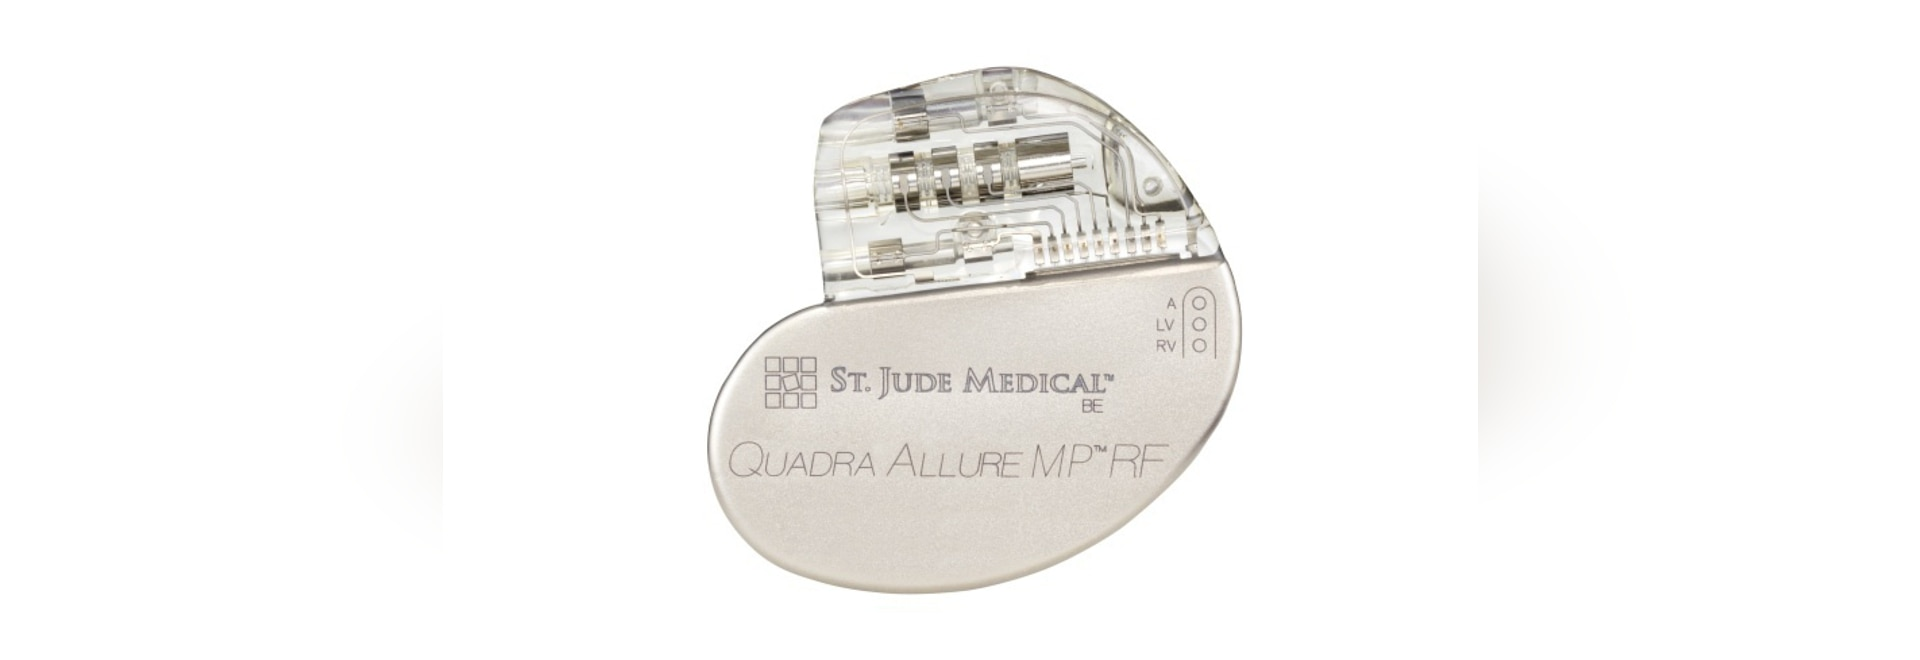 St. Jude Pacemaker Wins MRI Compatibility Approval in E.U.